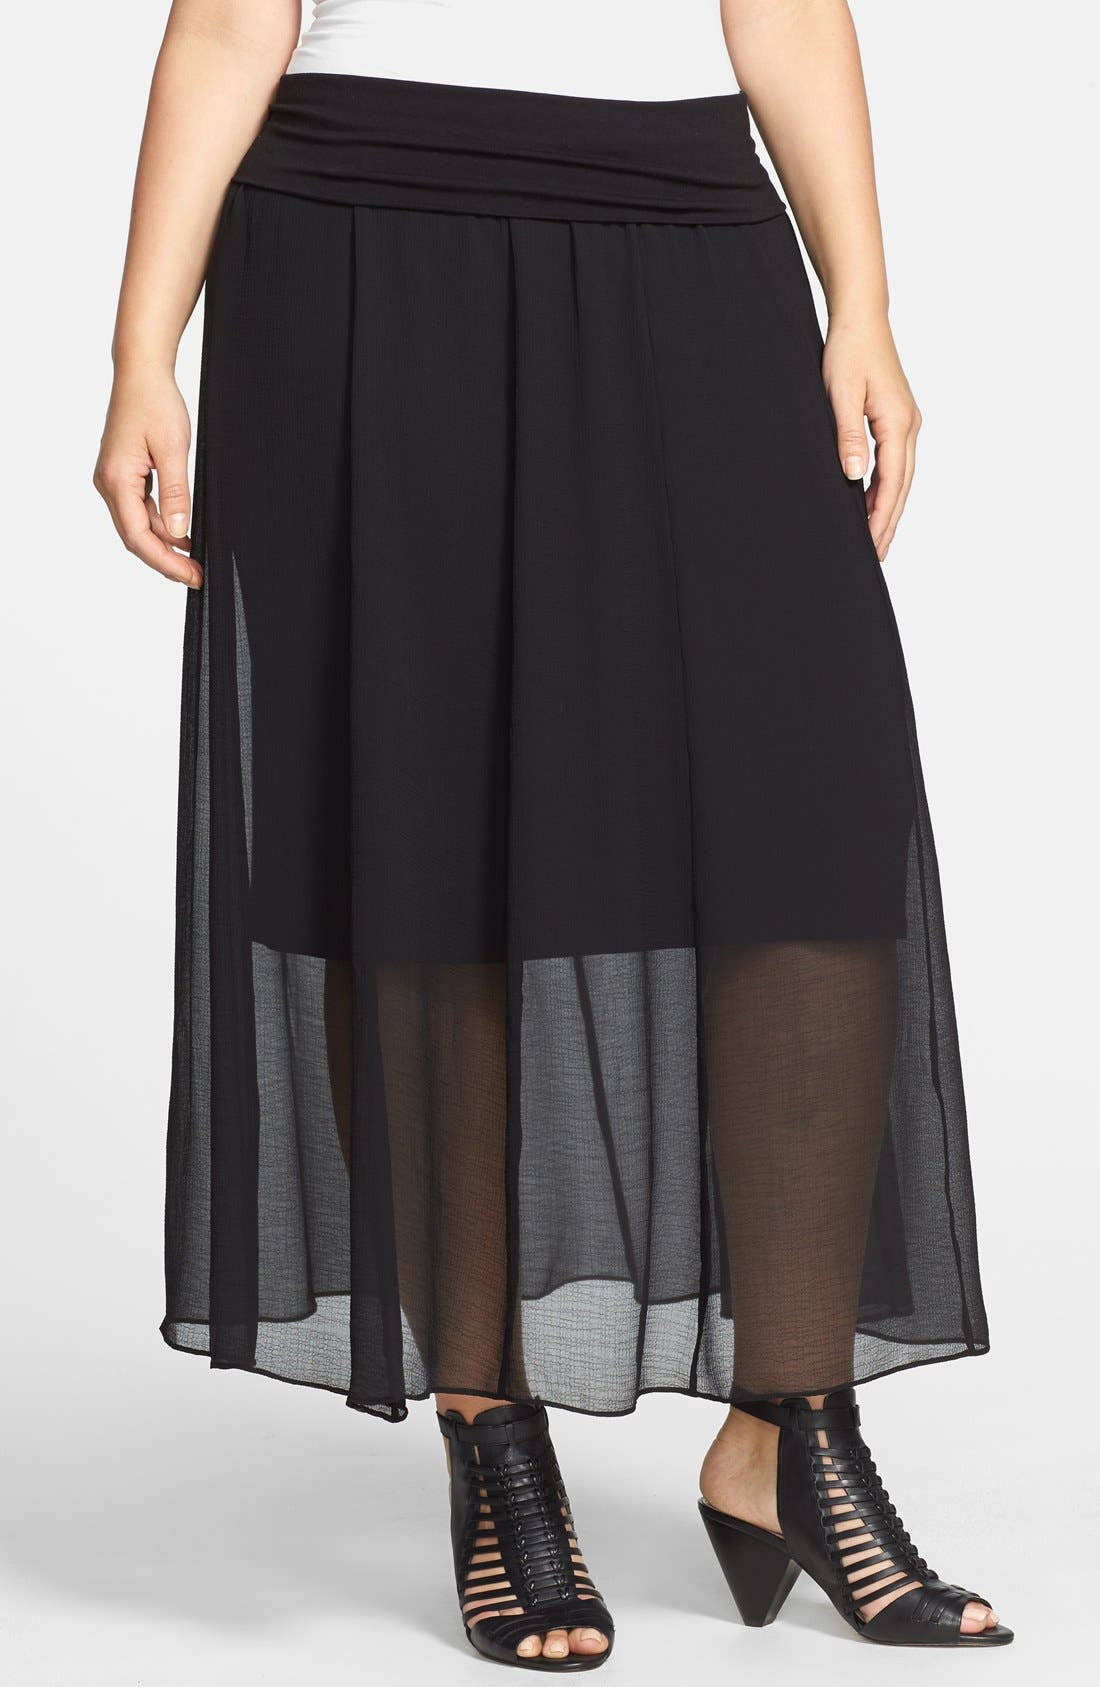 Alternate Image 1 Selected - Vince Camuto Sheer Pleat Maxi Skirt (Plus Size)